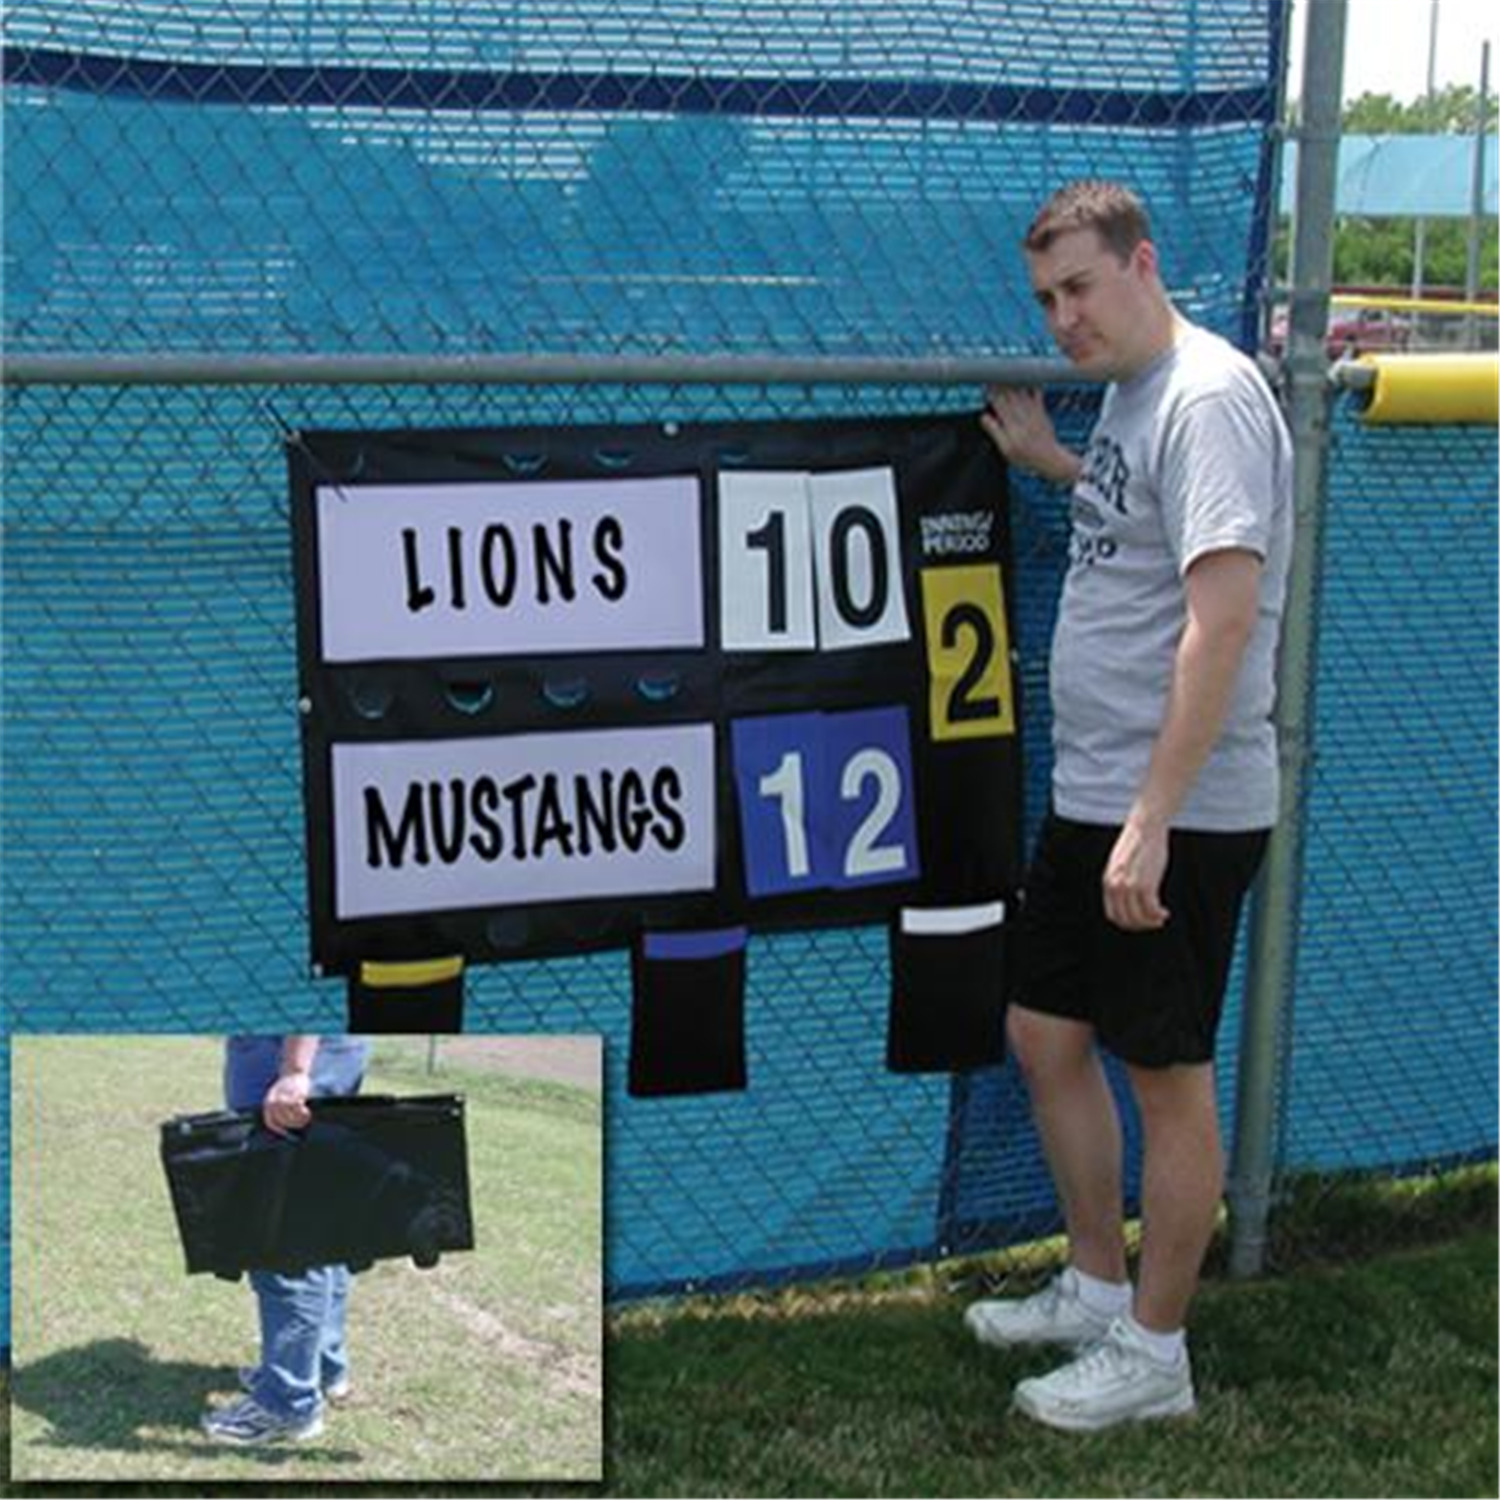 Portable Fence Mounted Scoreboard - [1240009]